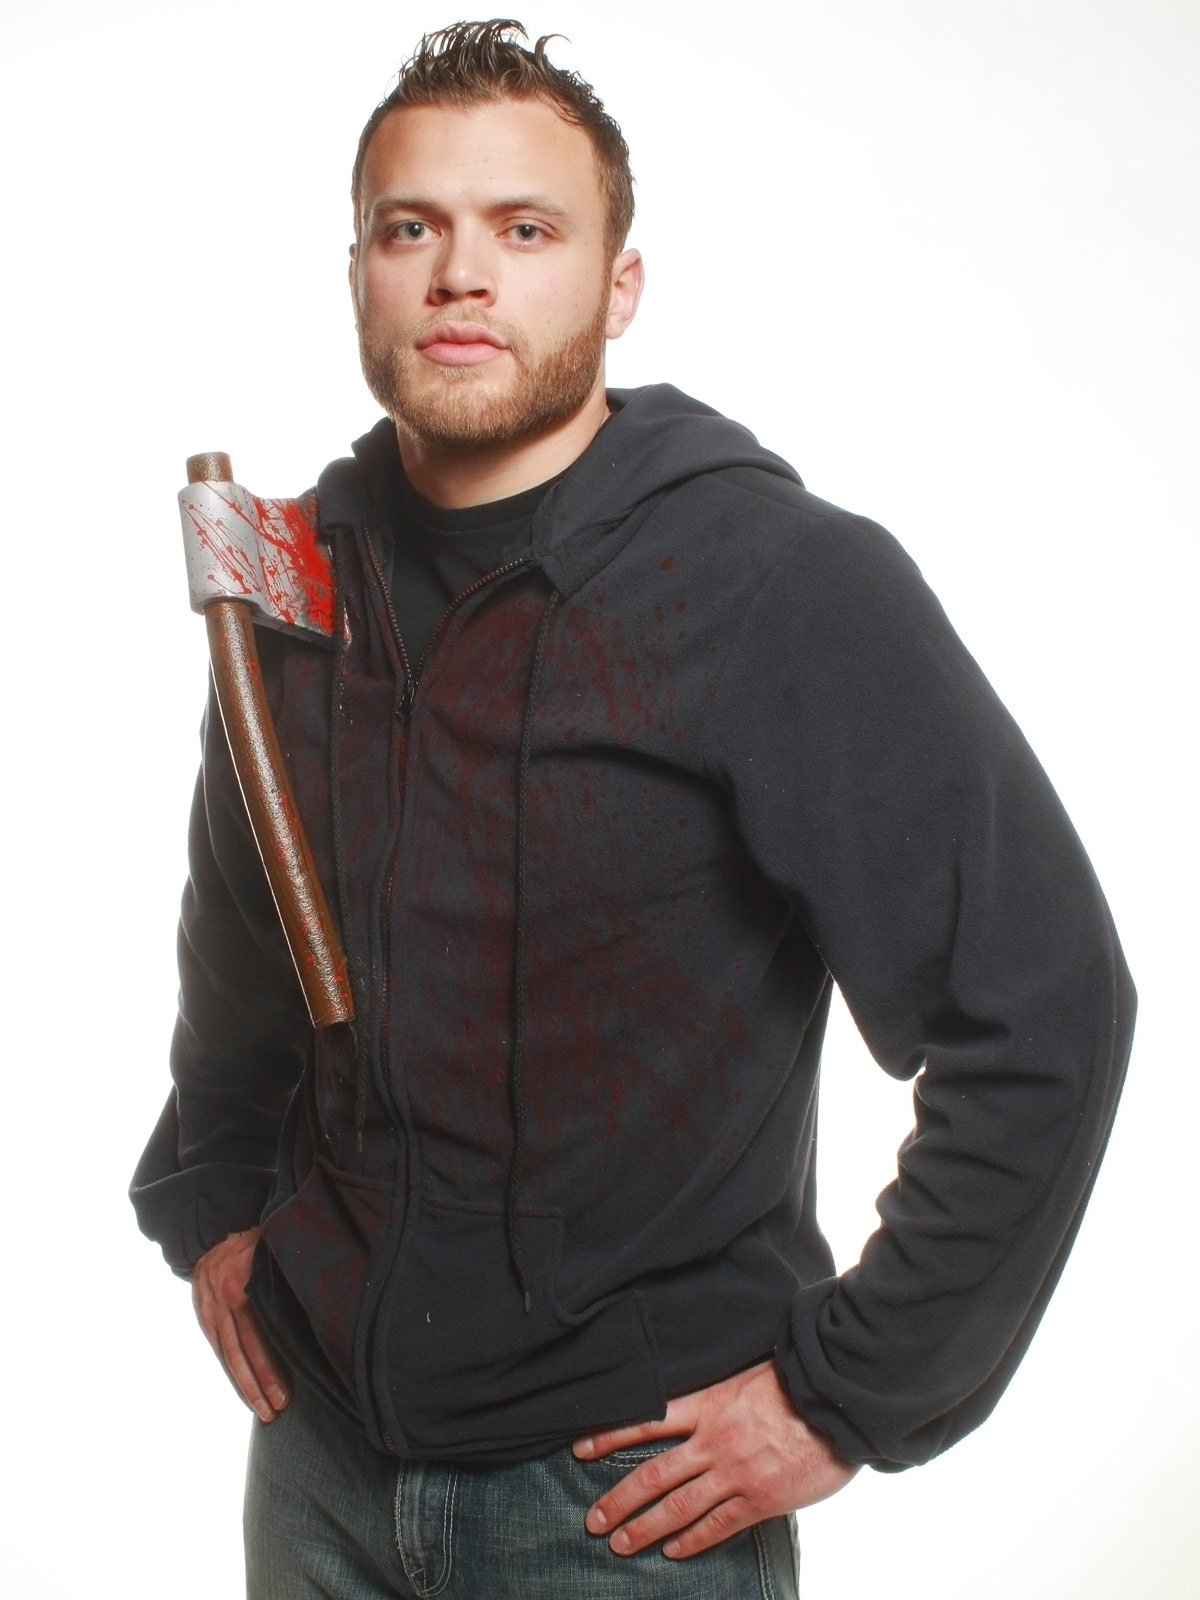 Hoodie with Bloody Axe Adult Costume